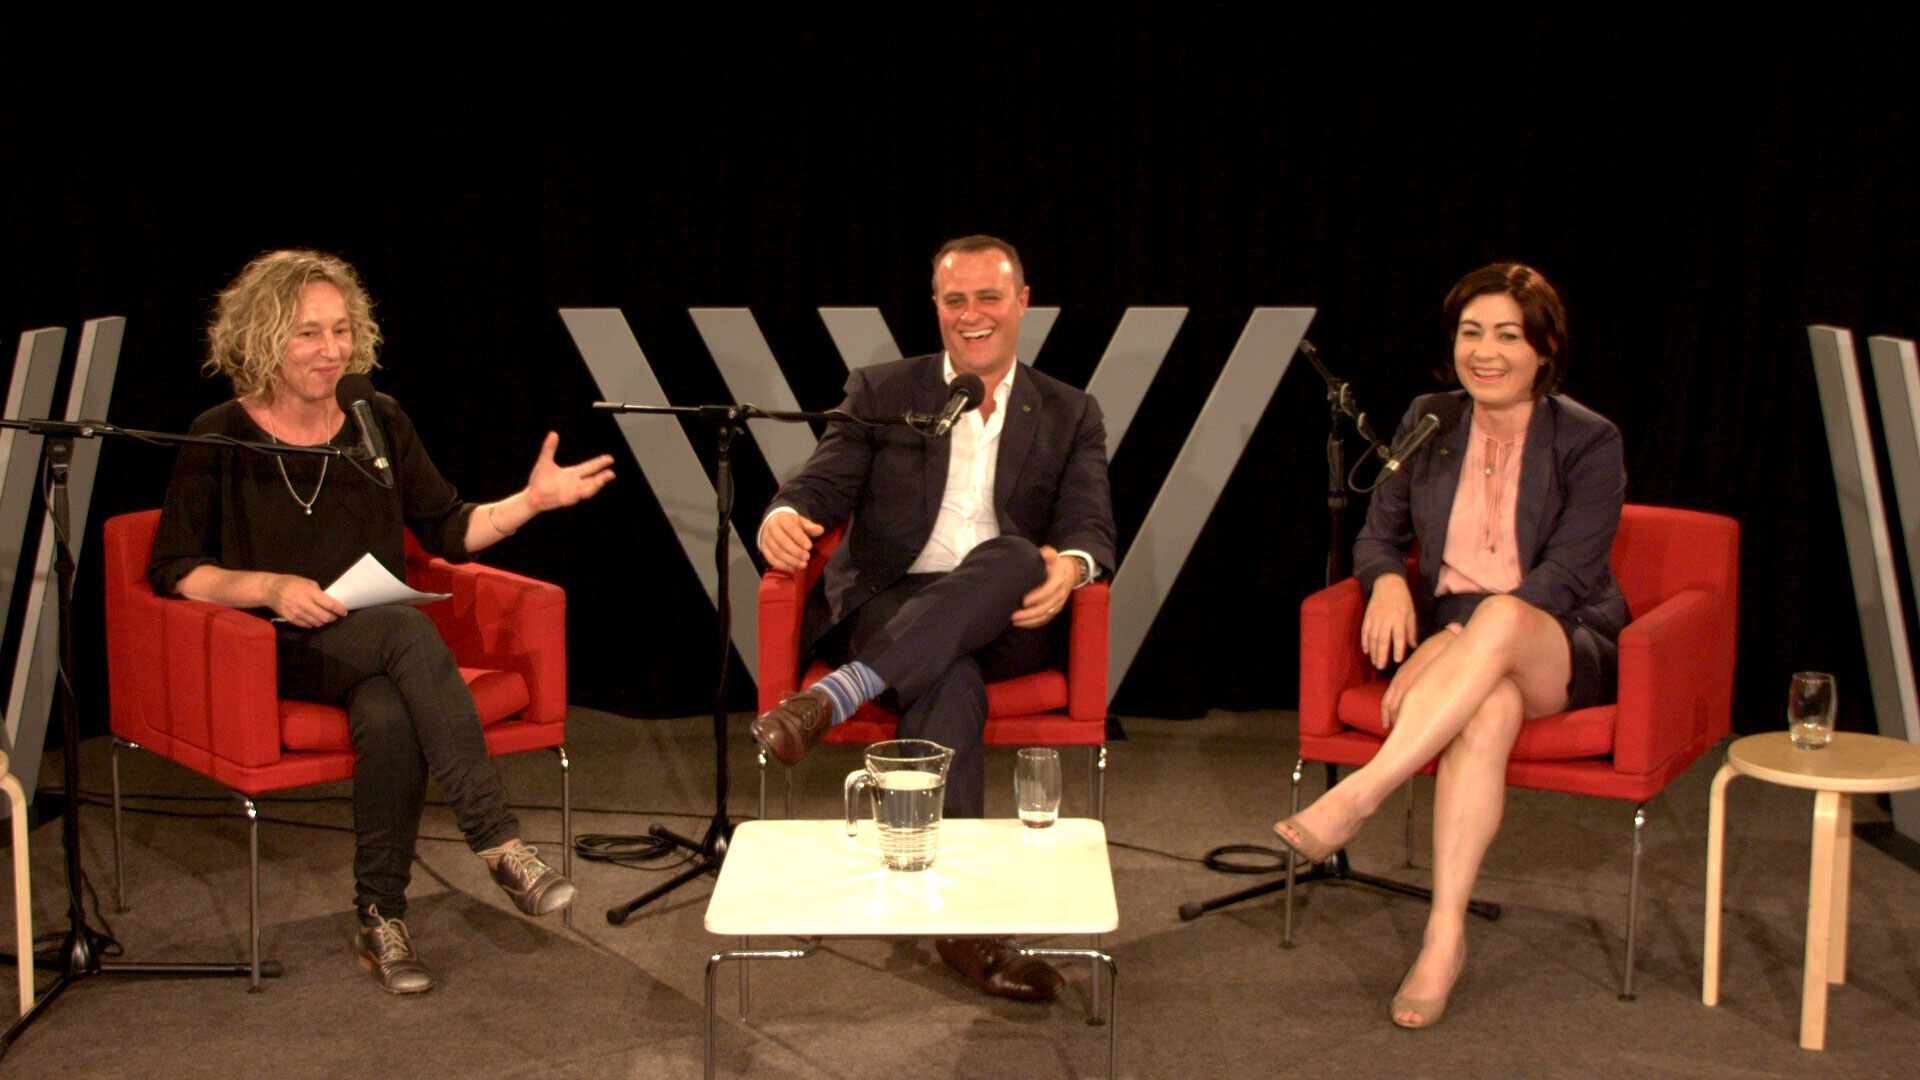 Sally Warhaft, Tim Wilson and Terri Butler